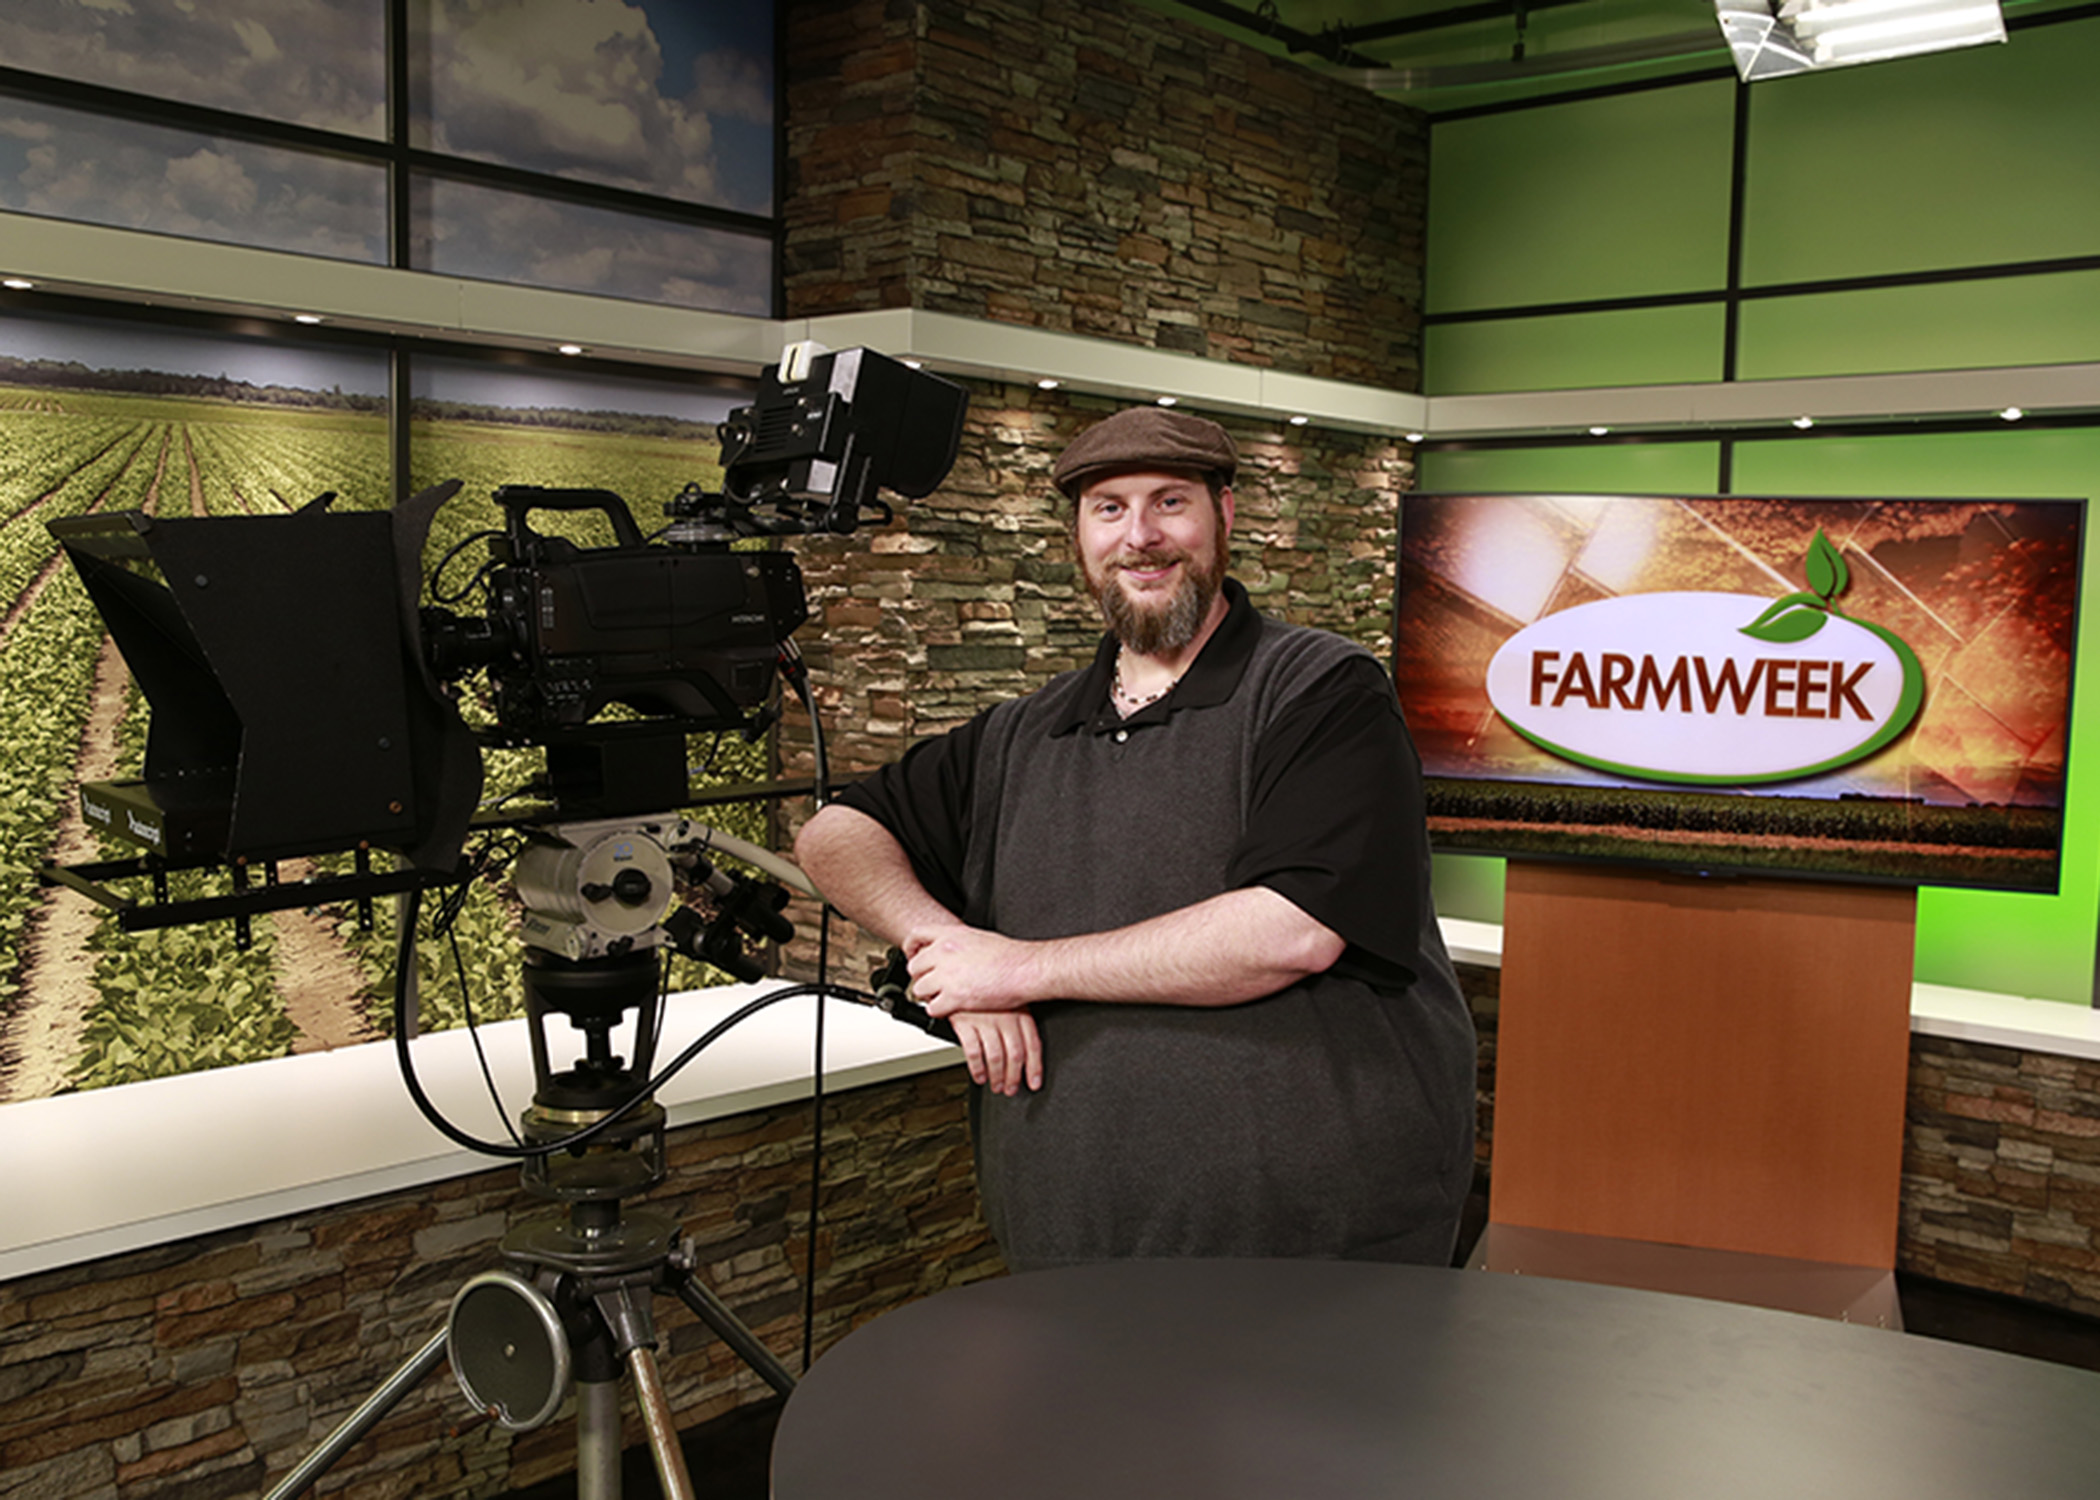 Bearded man in hat on Farmweek TV studio set.